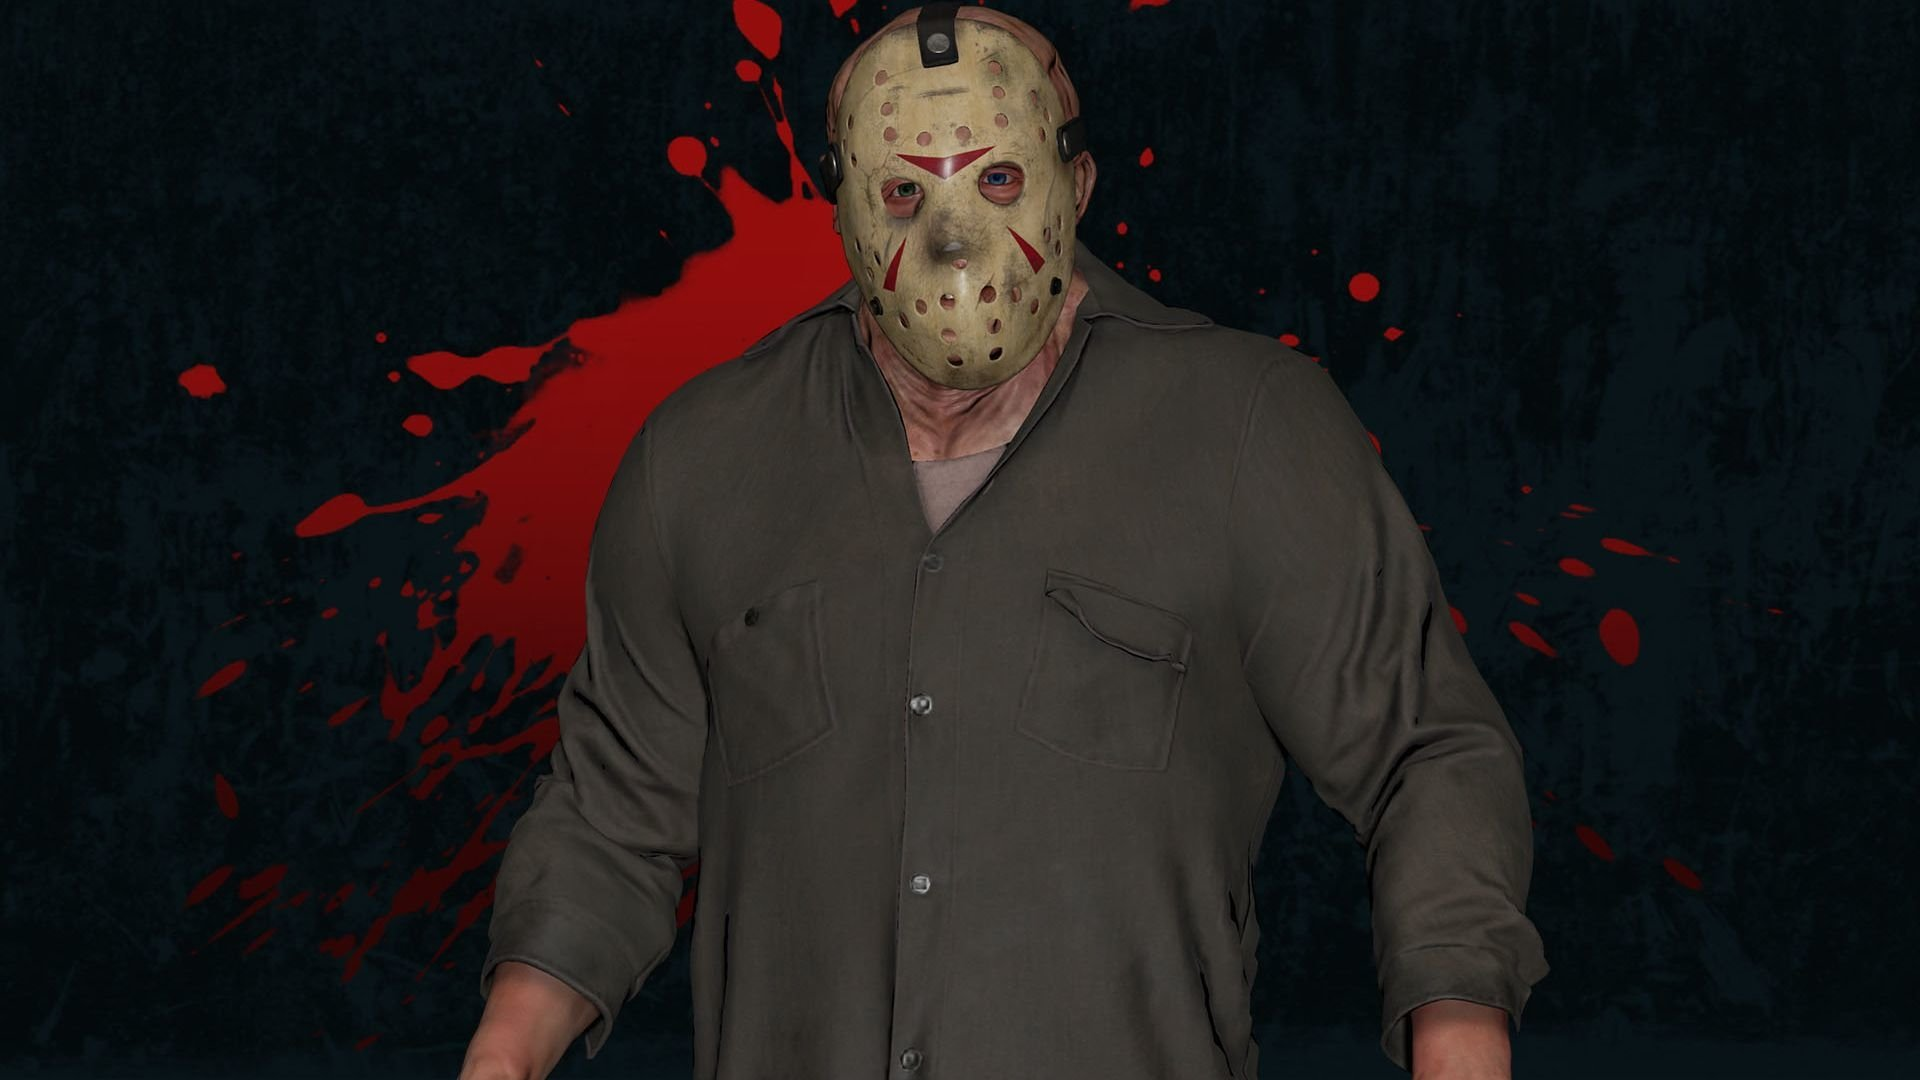 Friday The 13th The Game Hd Wallpapers Read Games Reviews Play